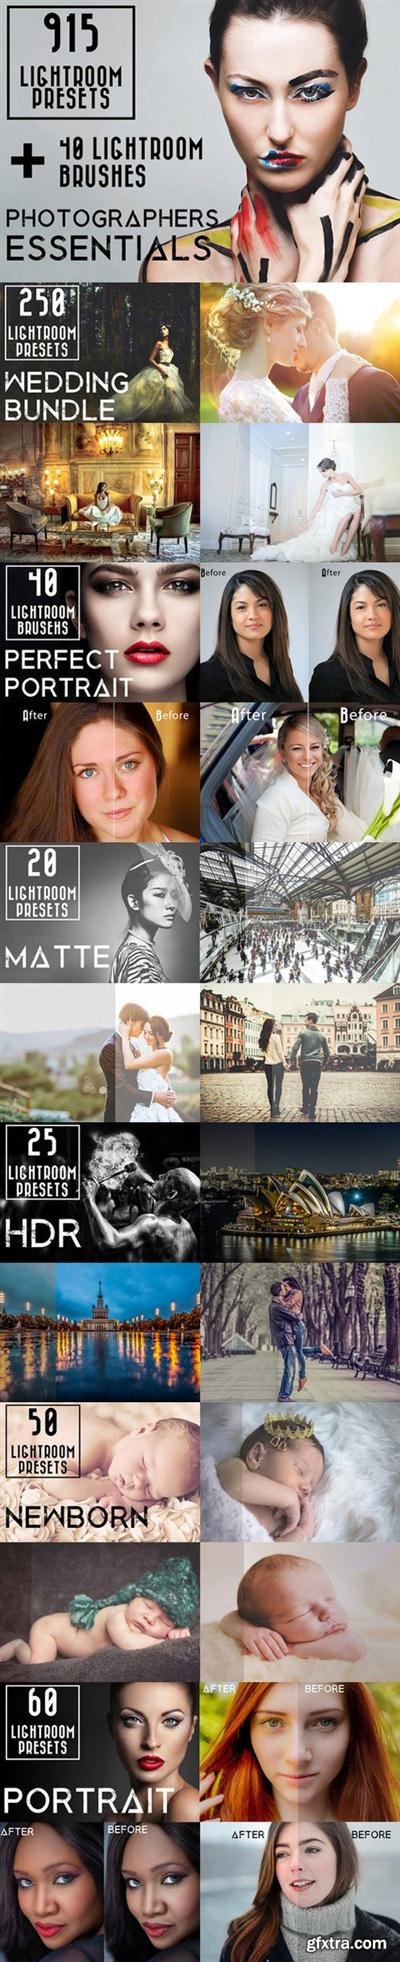 CM - 915 Lightroom Preset Bundle 895441